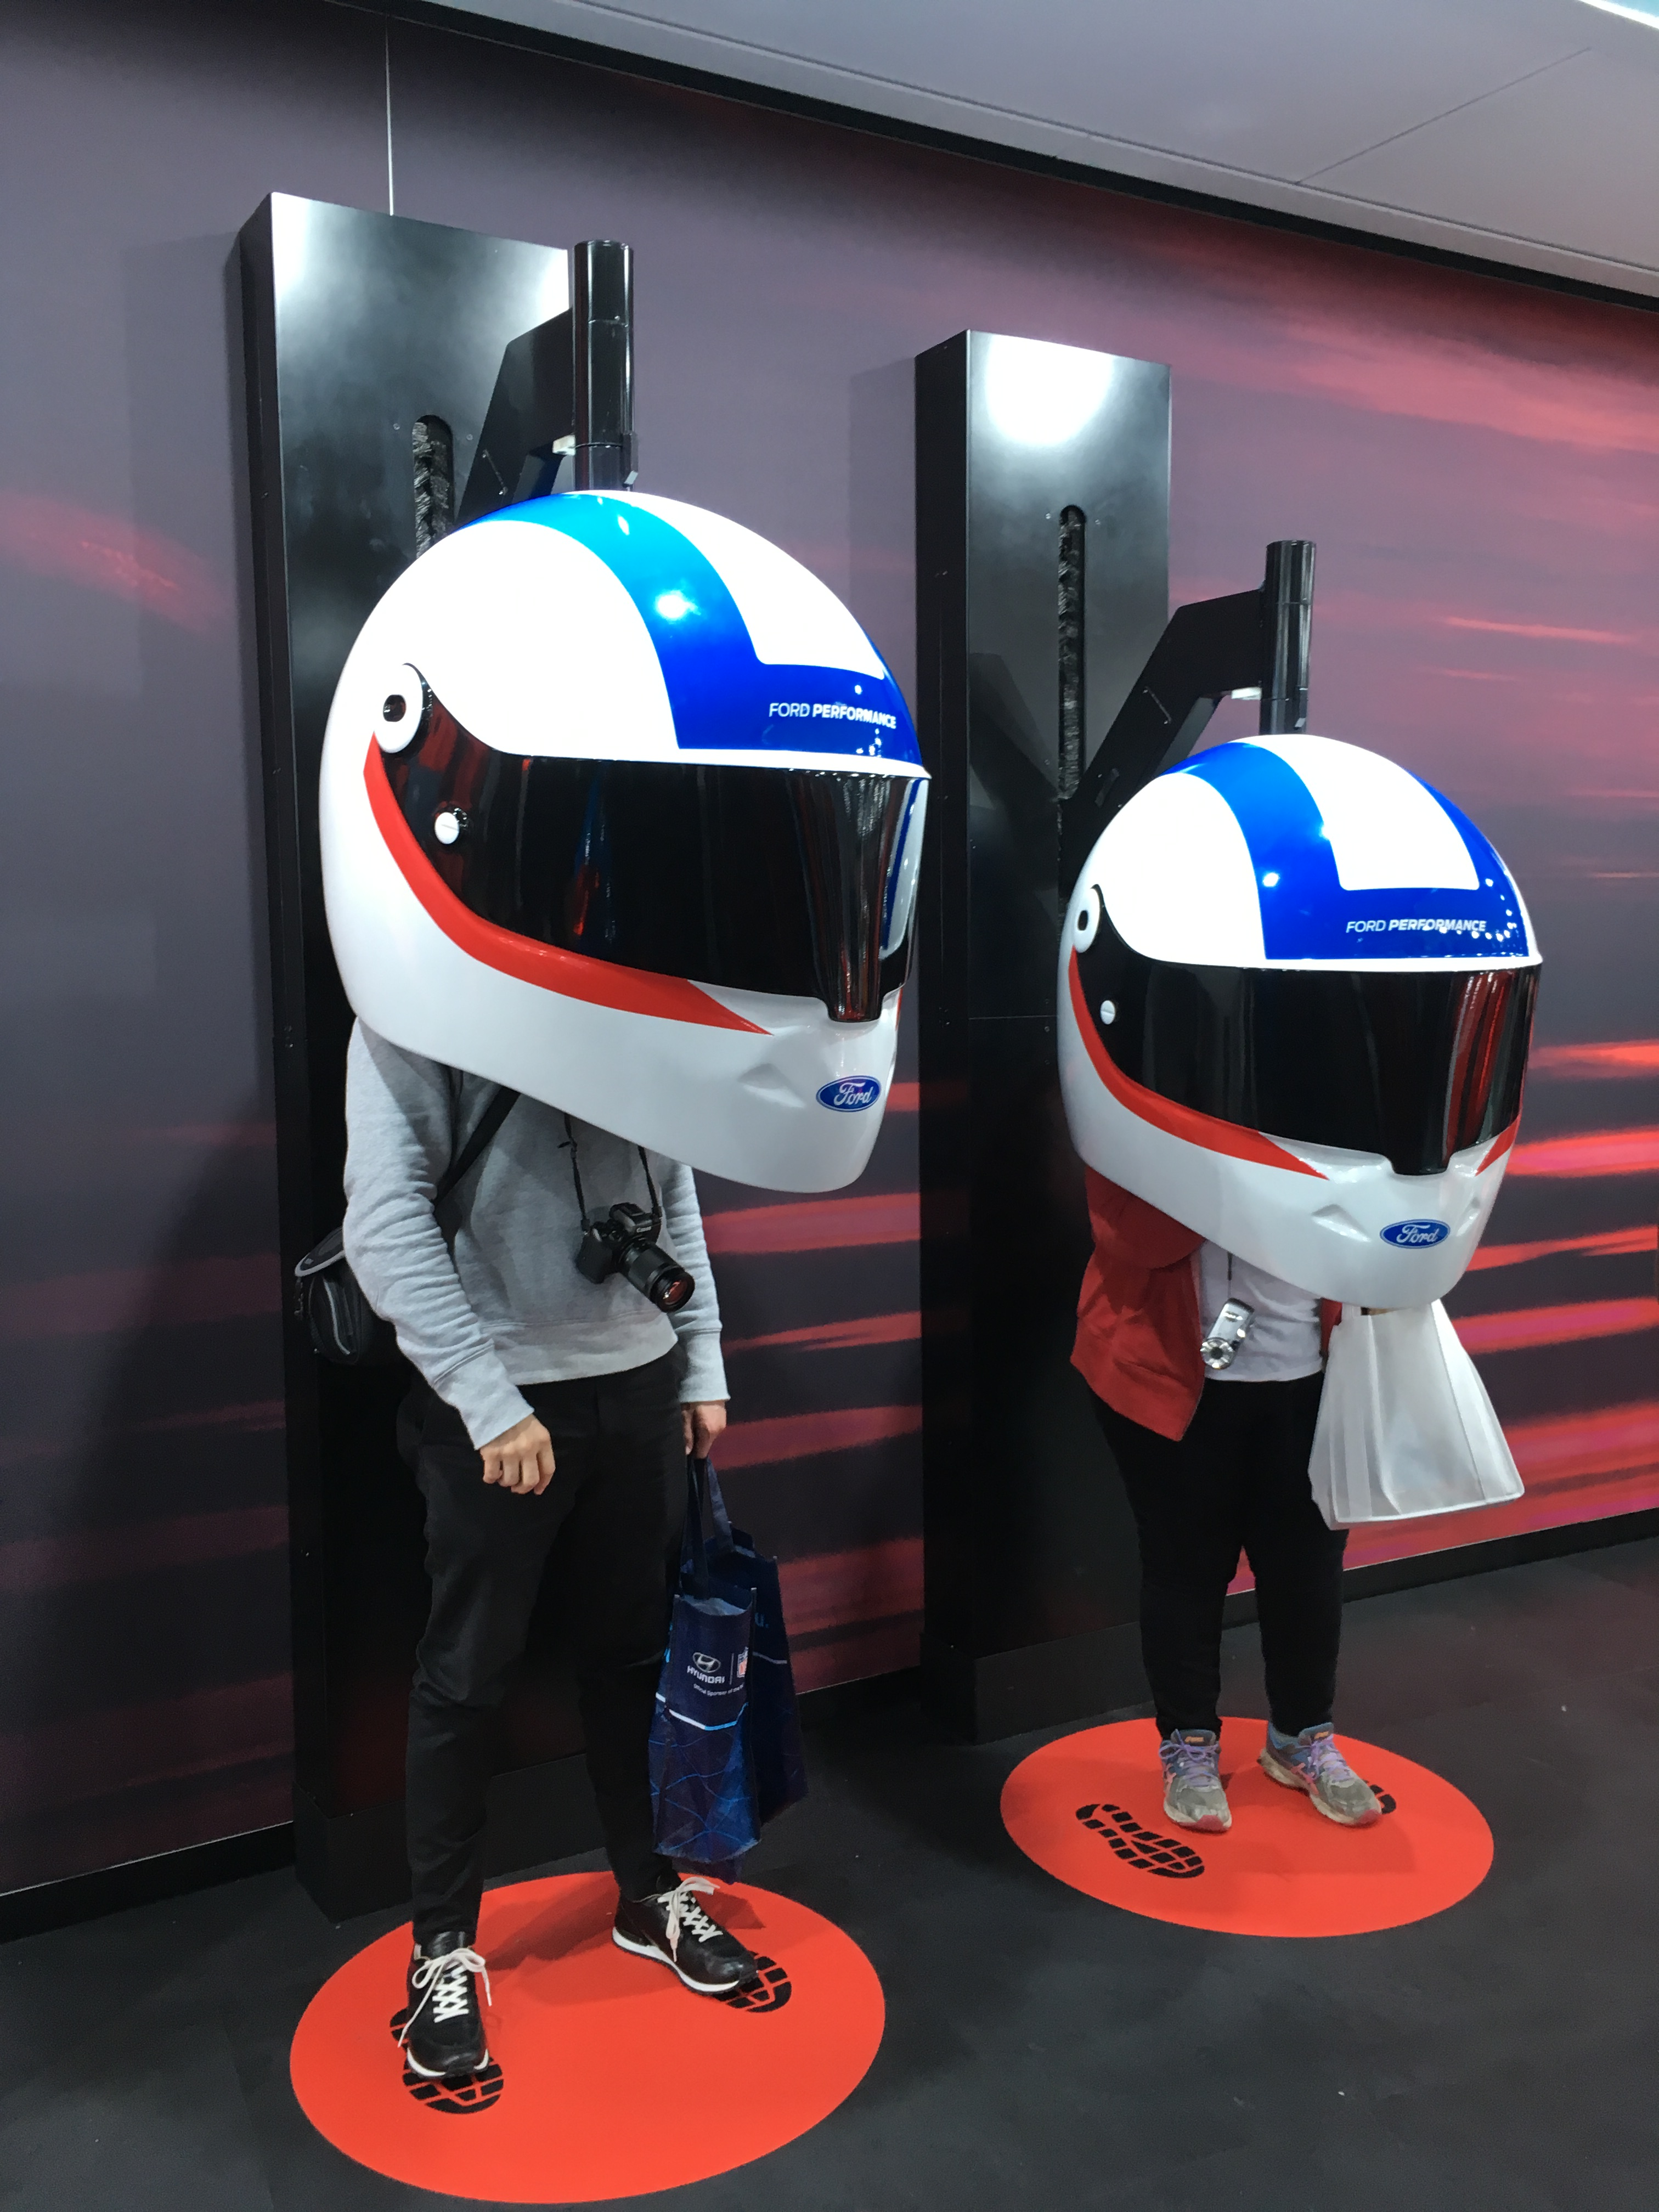 Giant racing helmets on two people at 2018 North American International Auto Show in Detroit